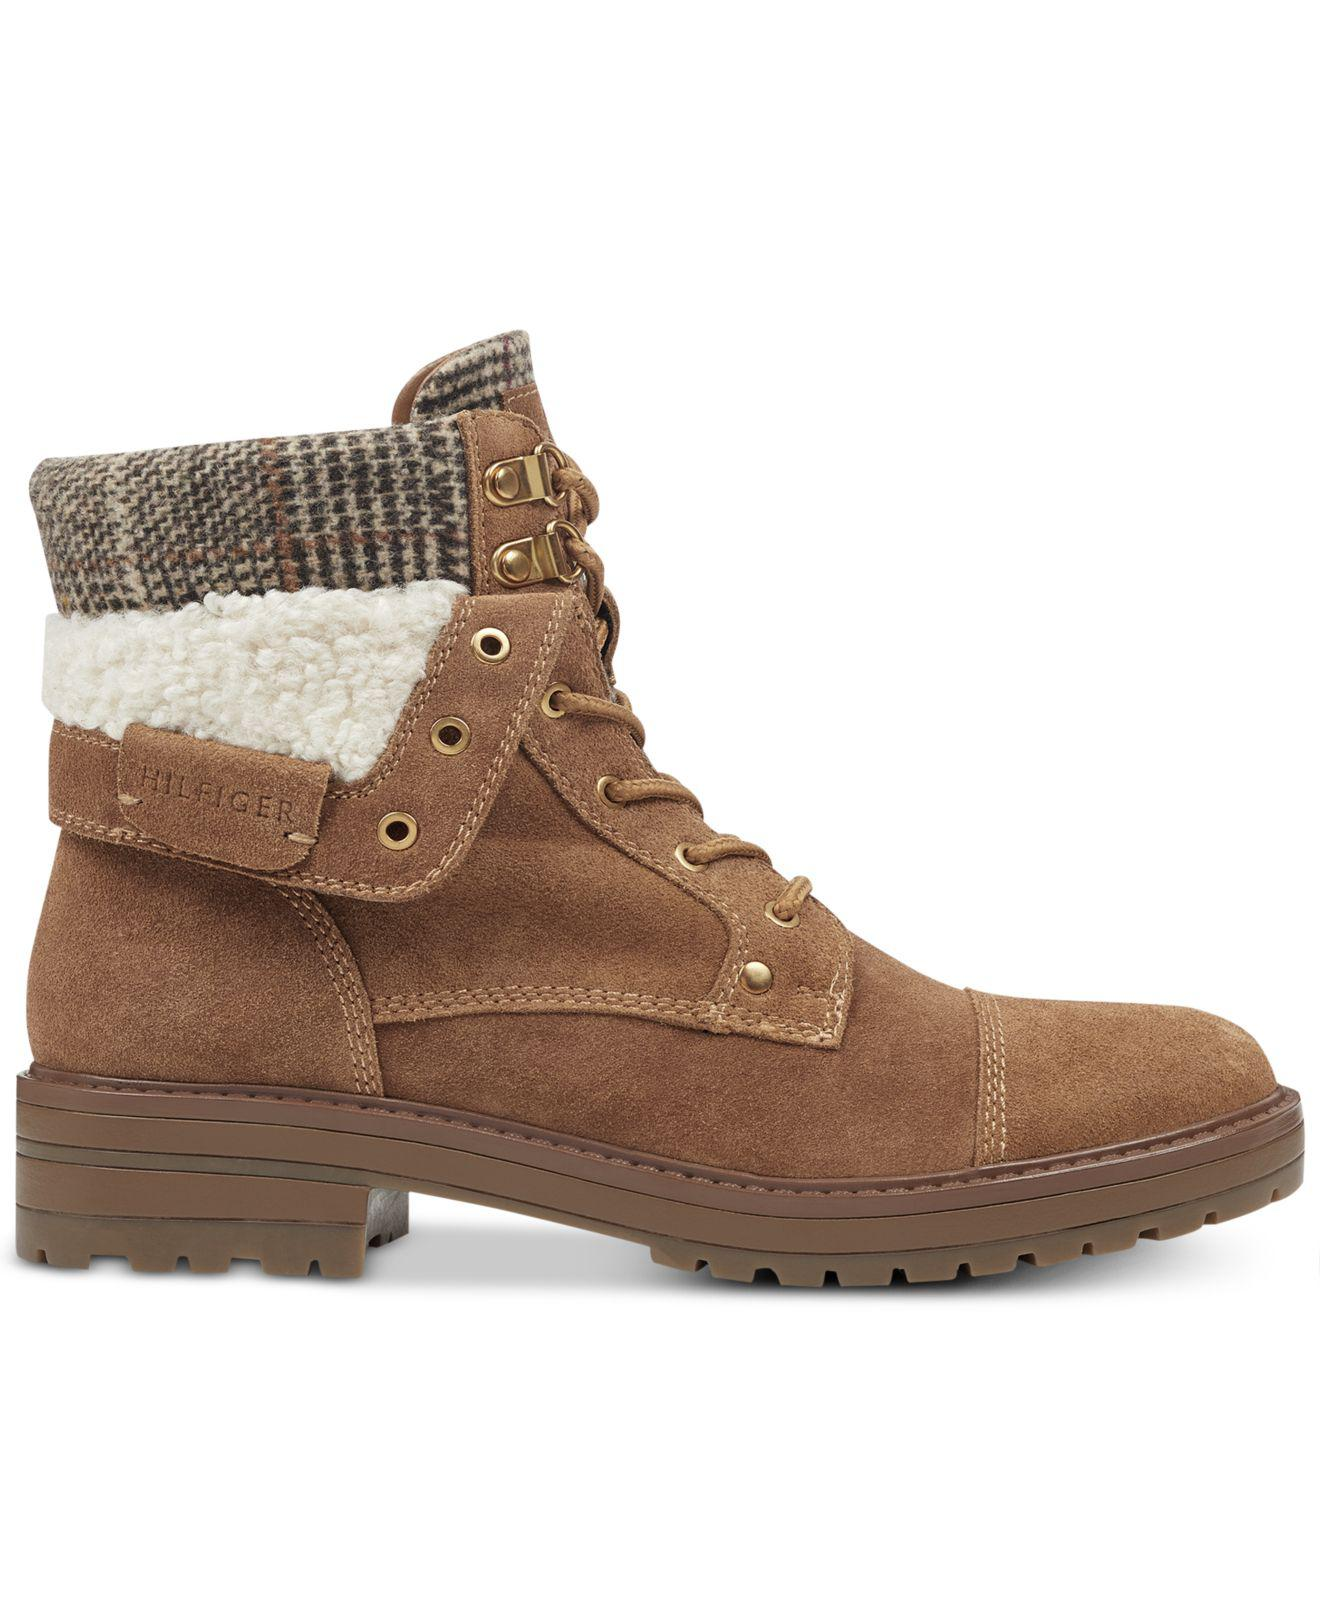 eccafb69c10846 Lyst Tommy Hilfiger Dyan Lace Up Winter Boots In Brown